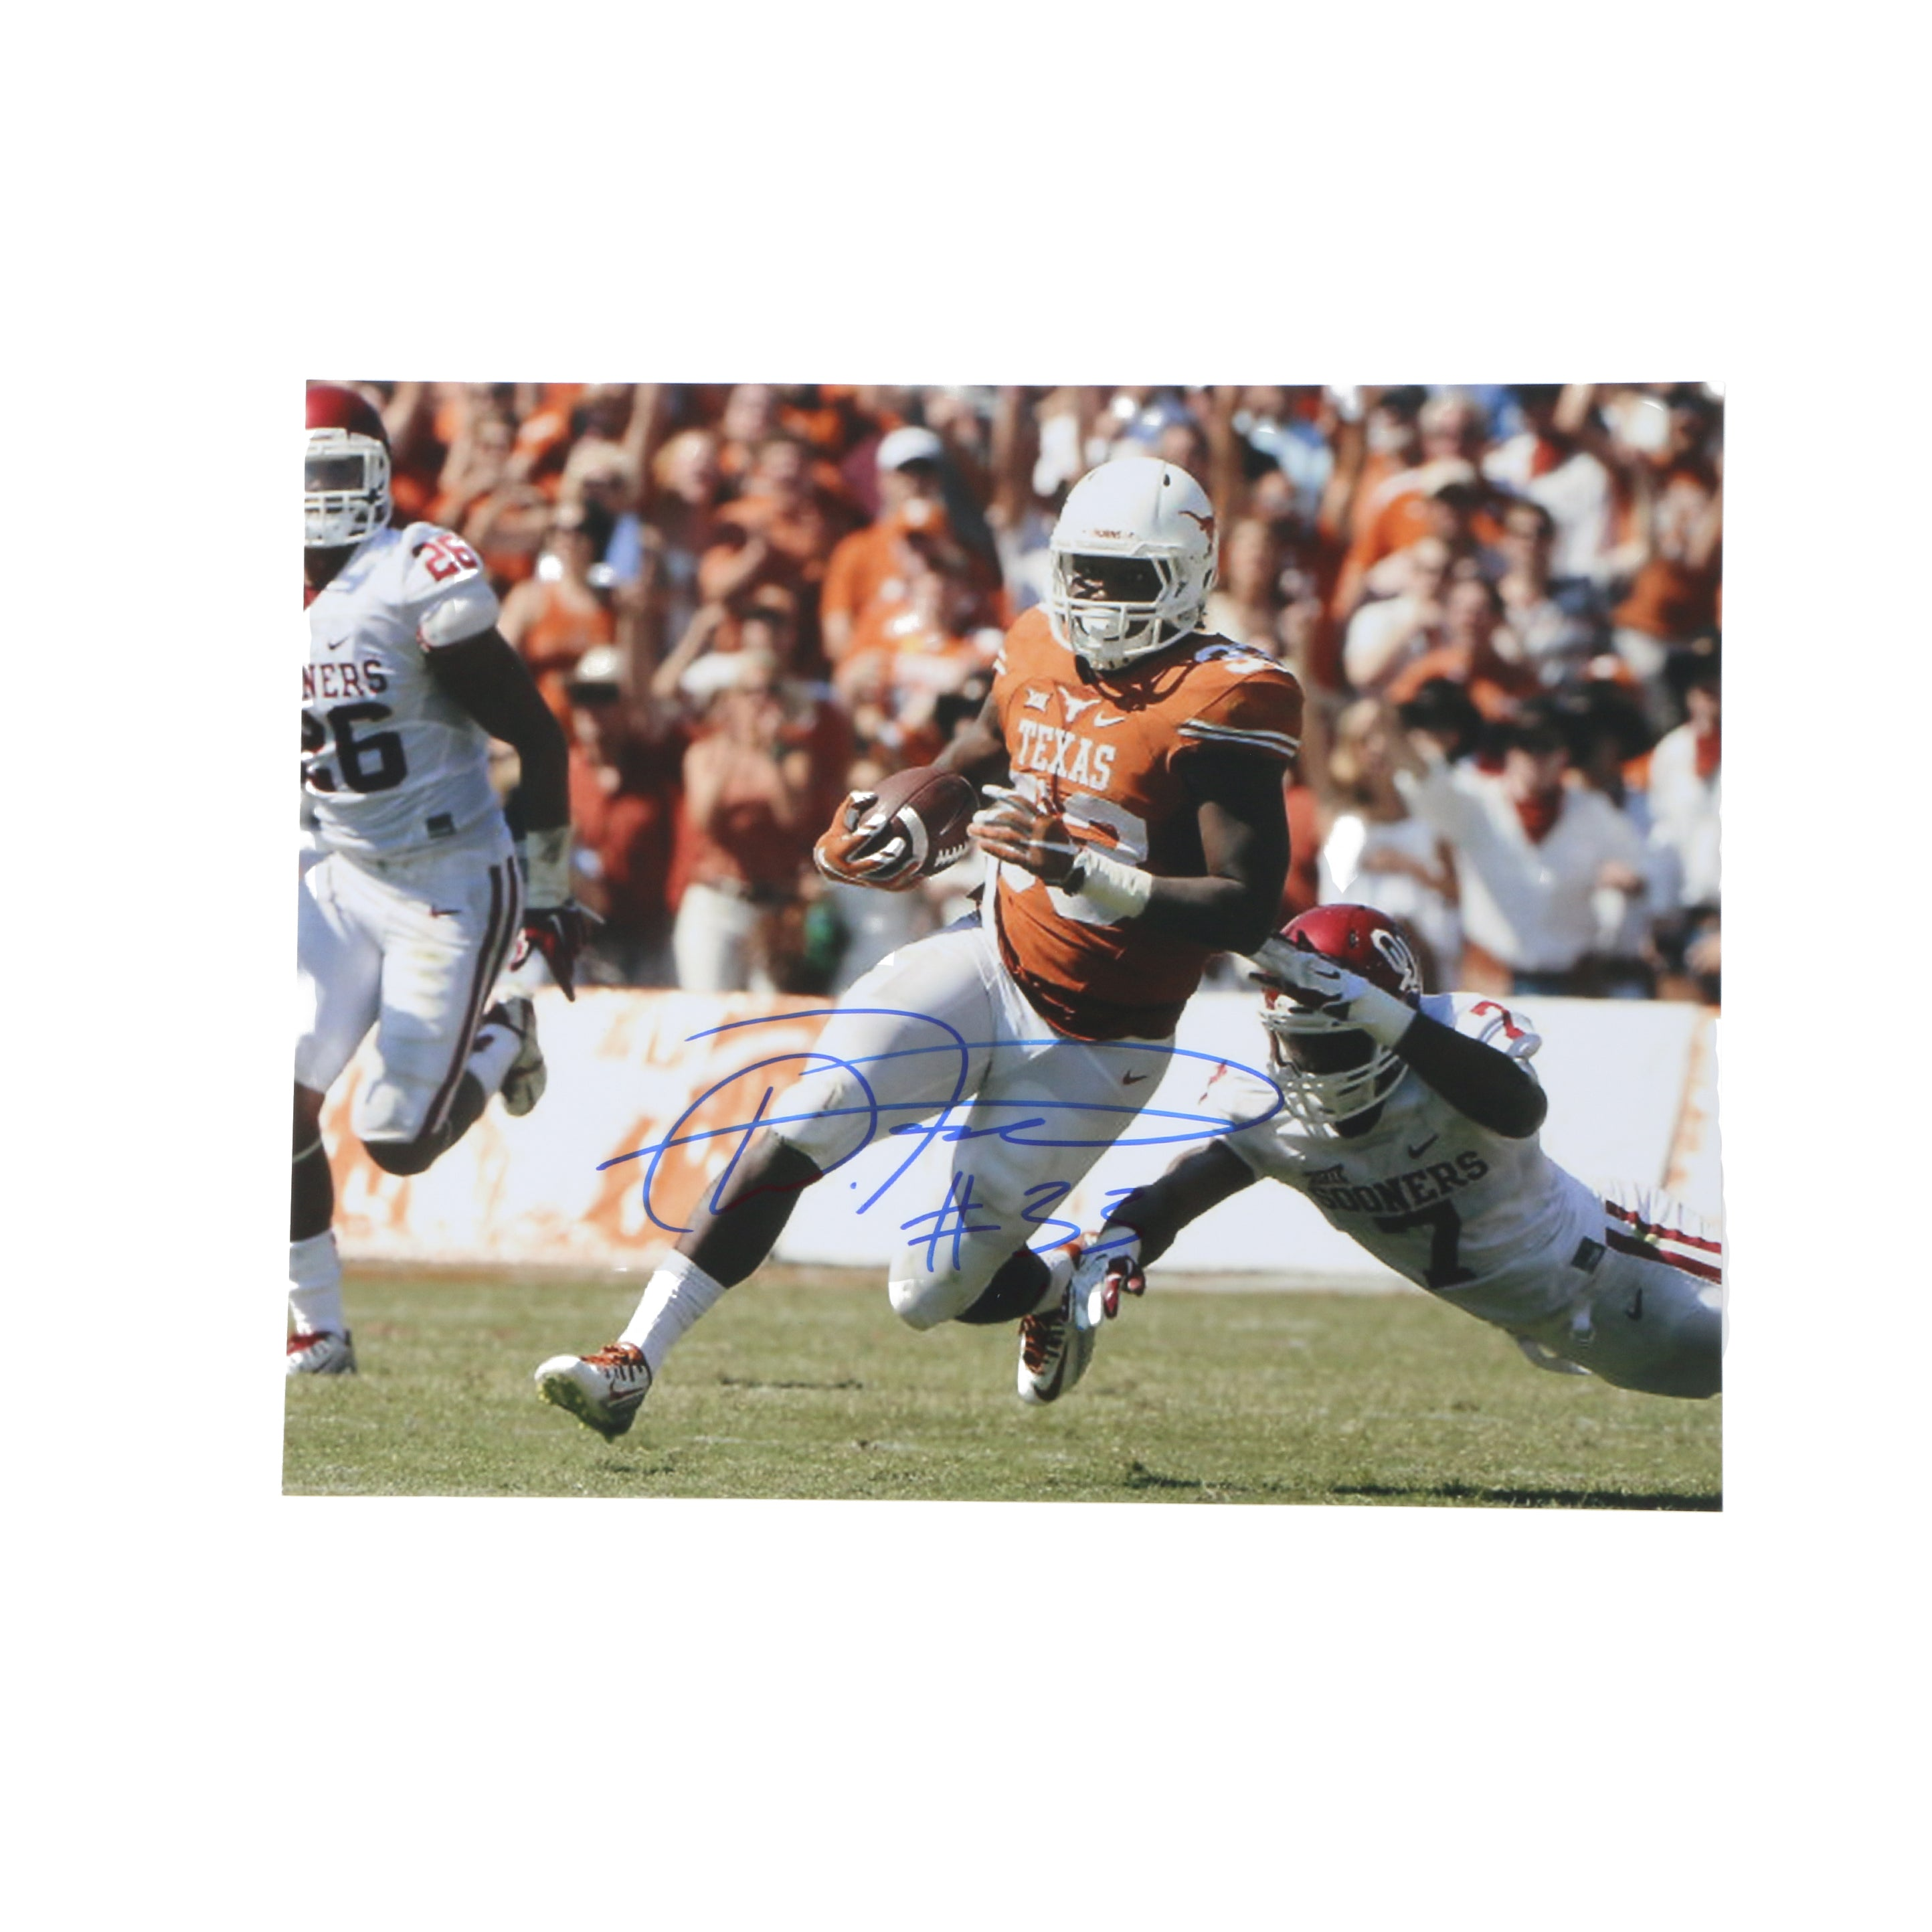 D'onta Foreman Signed 11x14 Photo